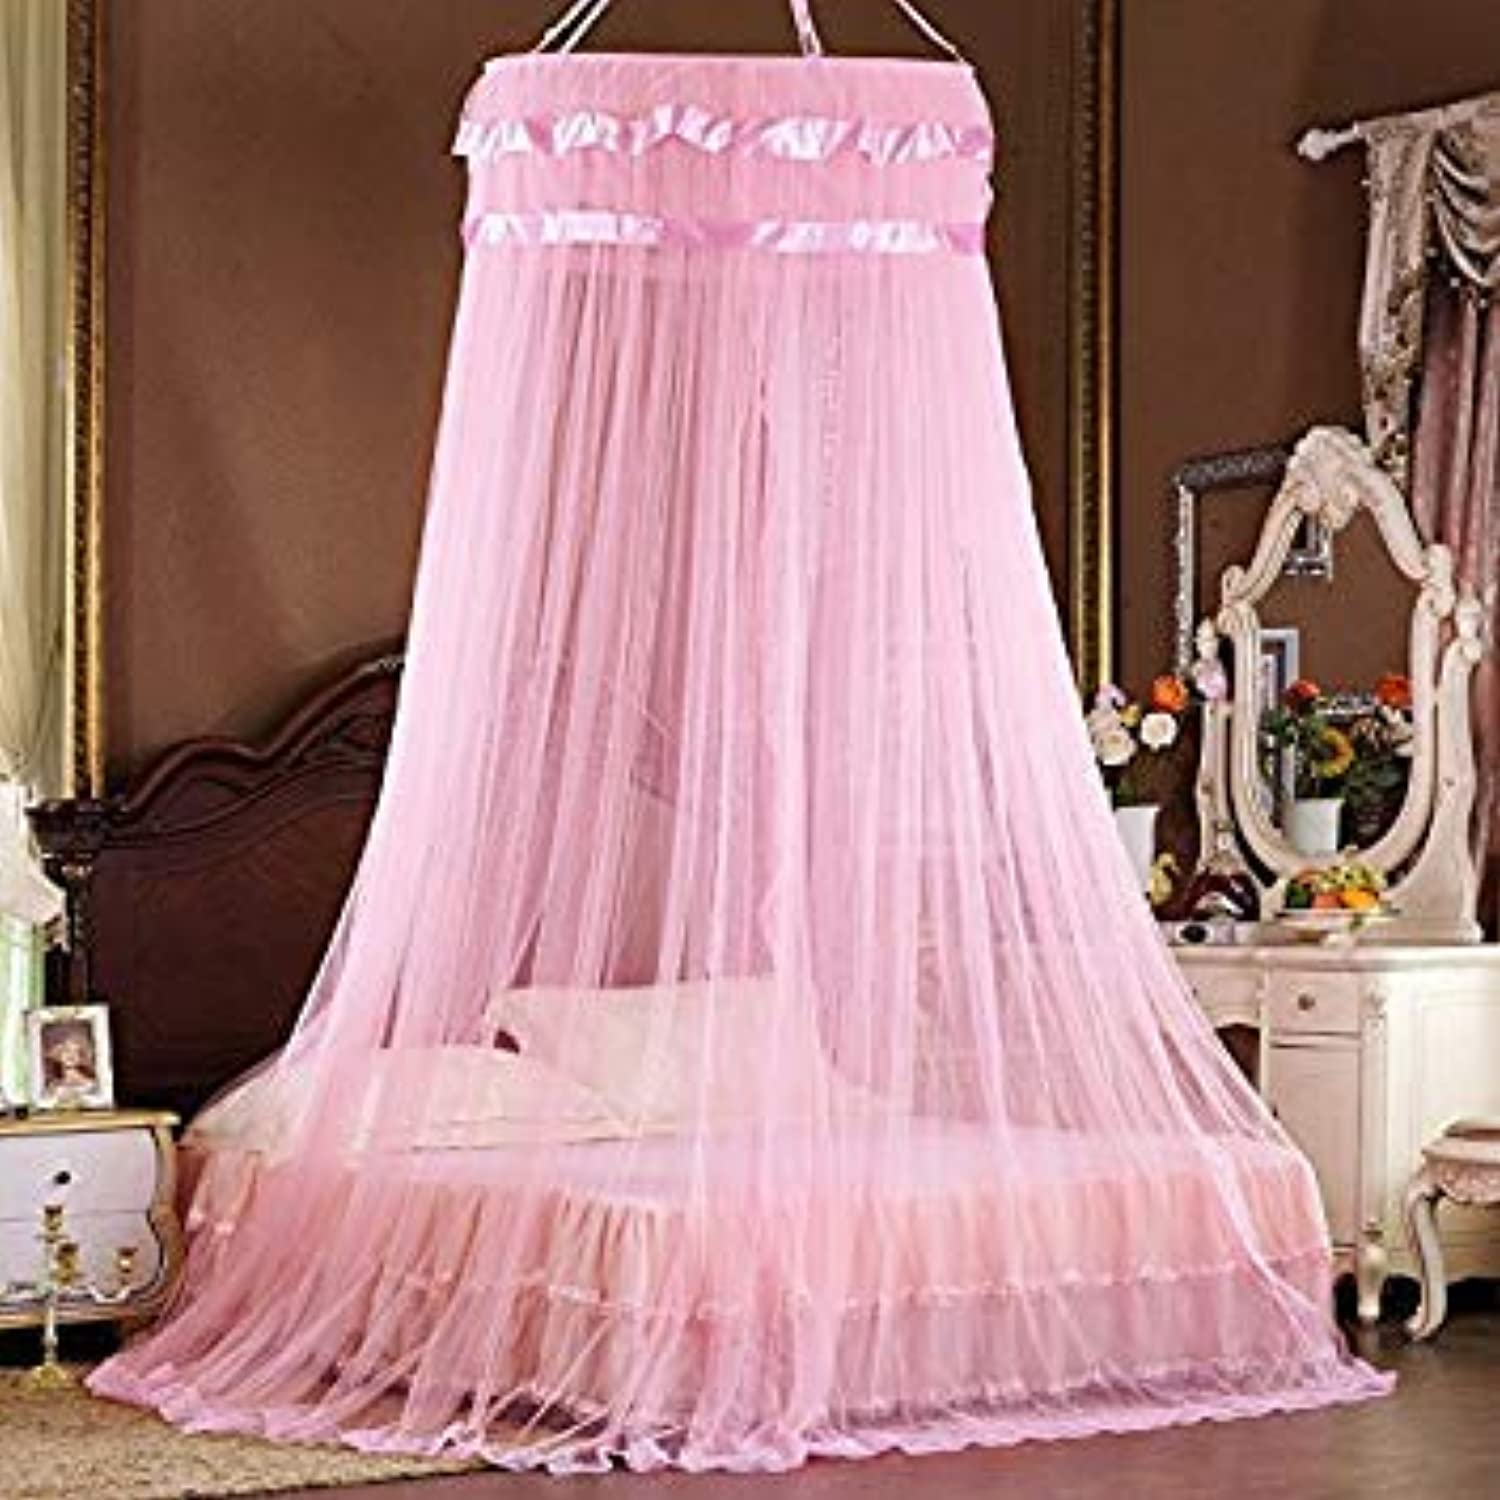 Yellow, Universal   Fashion Princess Bed Canopy Curtain Netting Hung Dome Circular Round Mosquito Net House Bedding